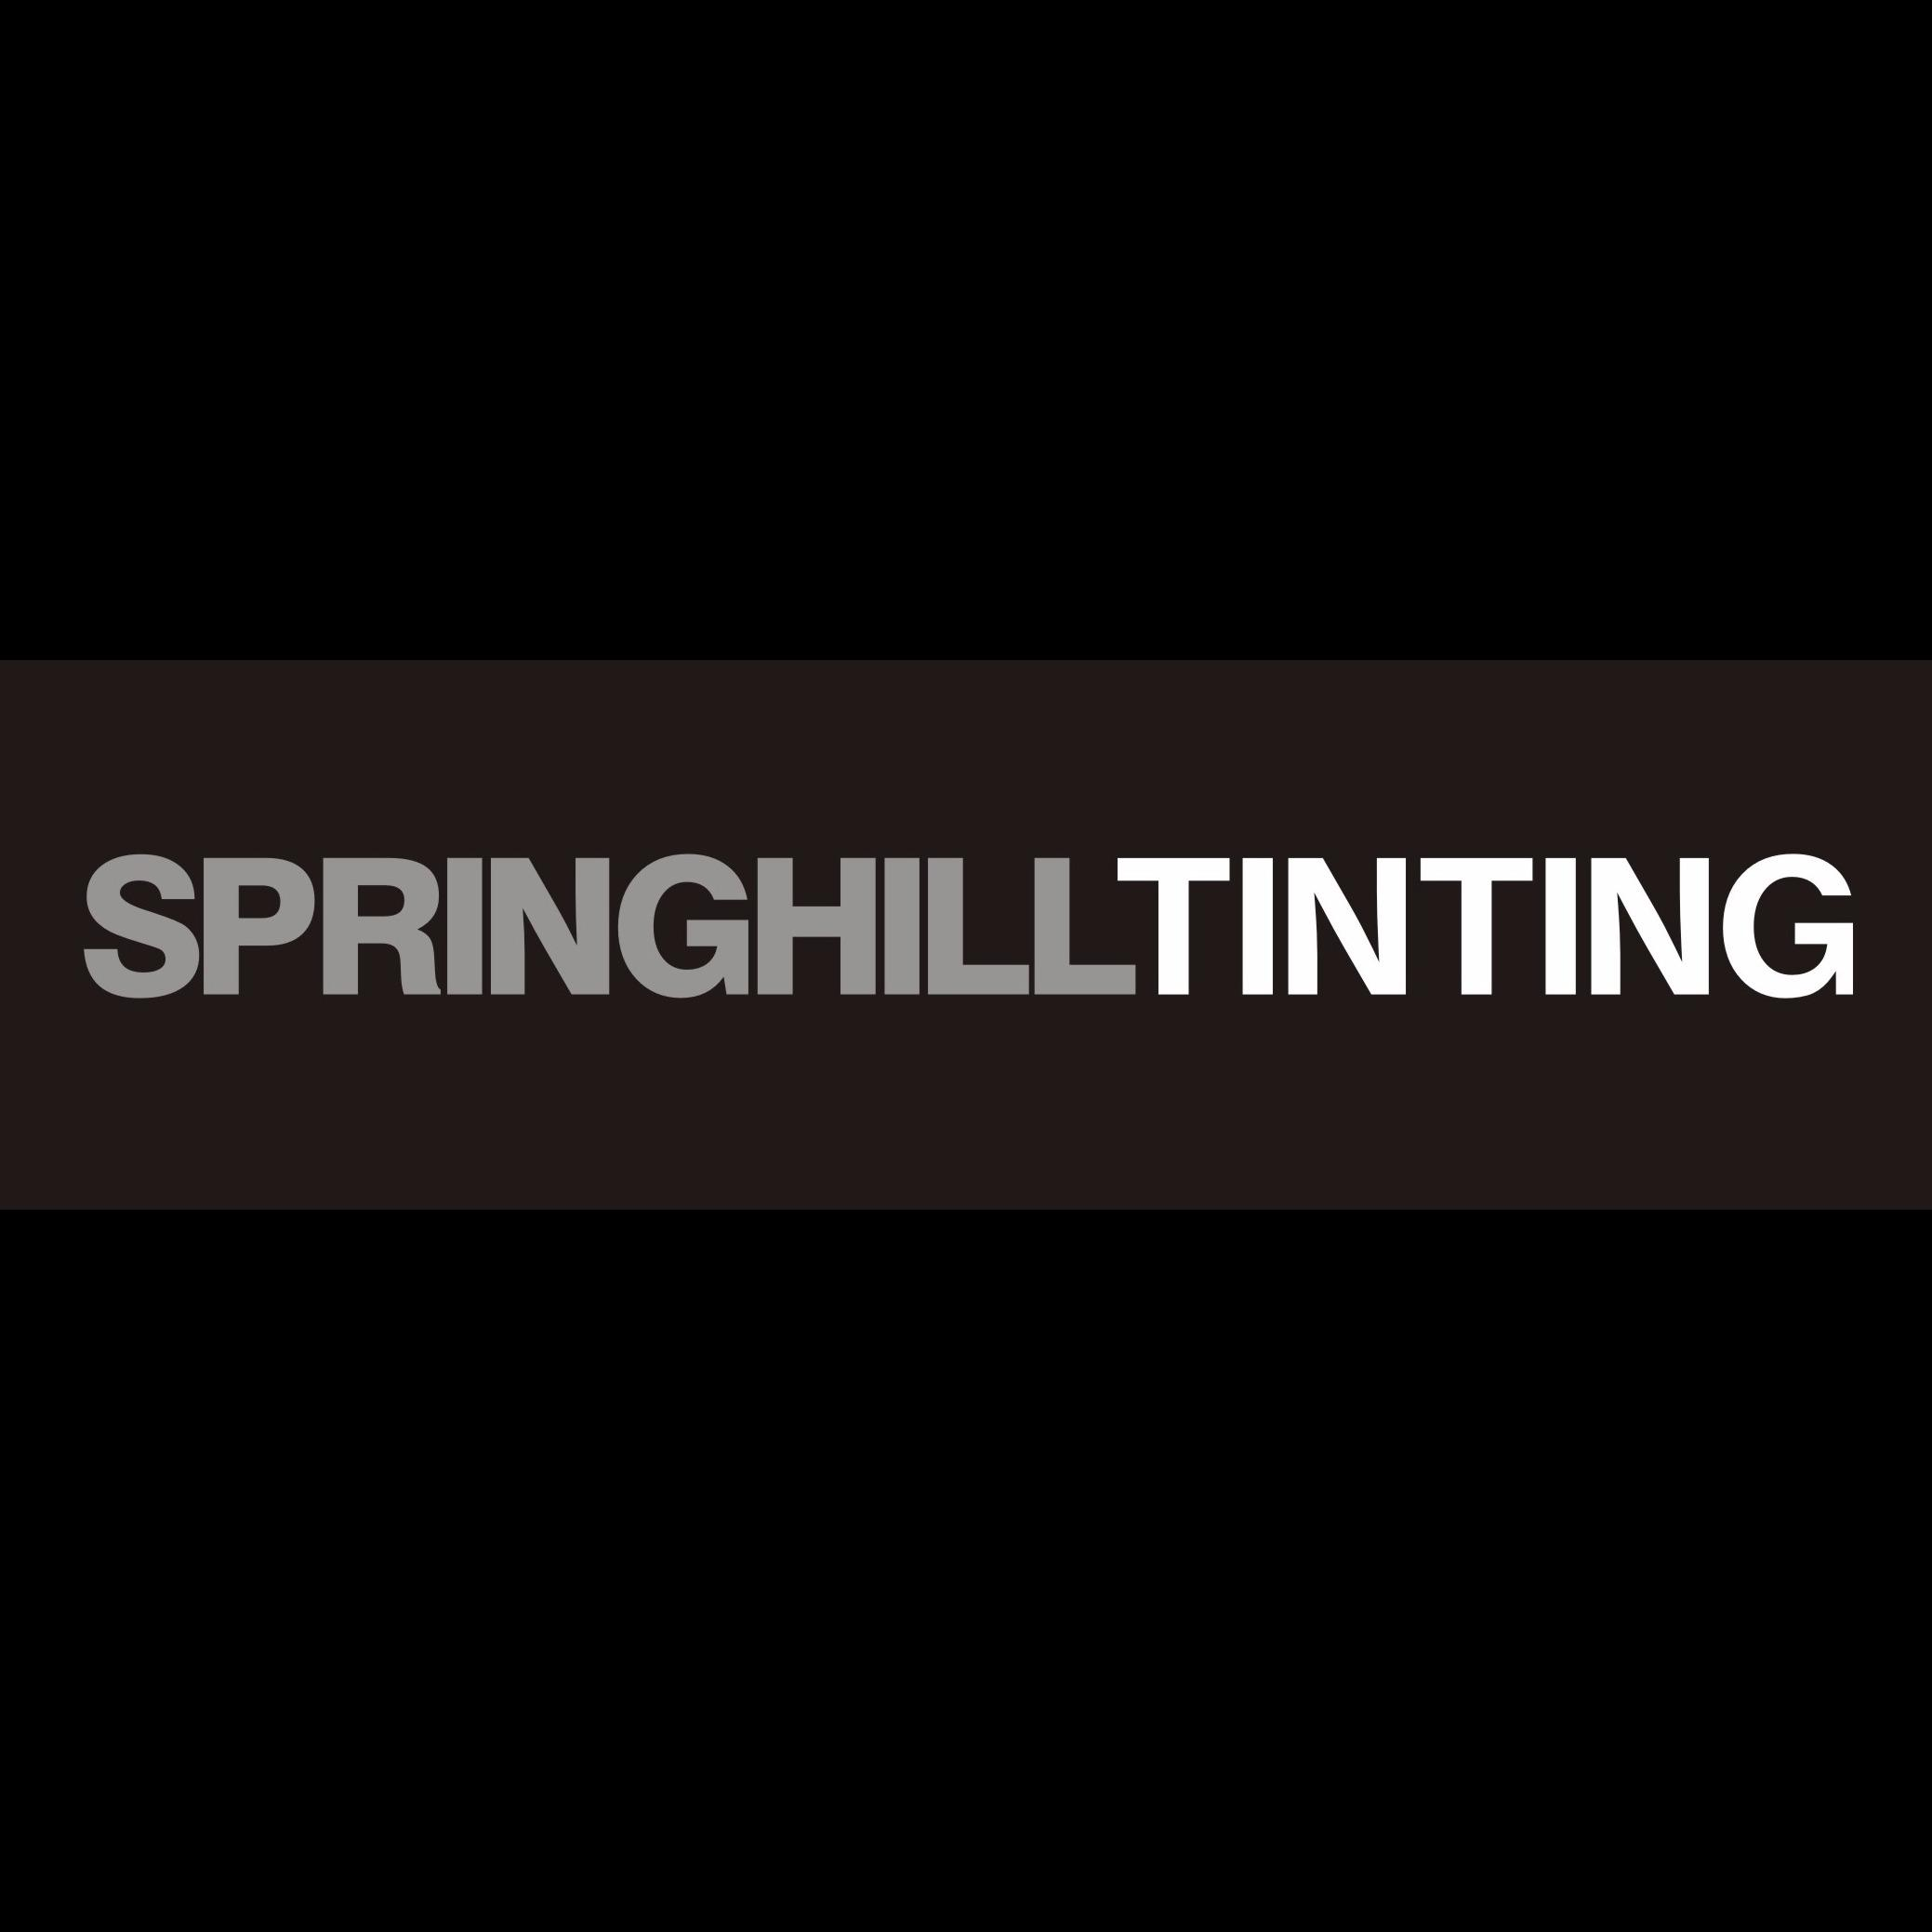 Springhill Tinting In Daphne Al Whitepages